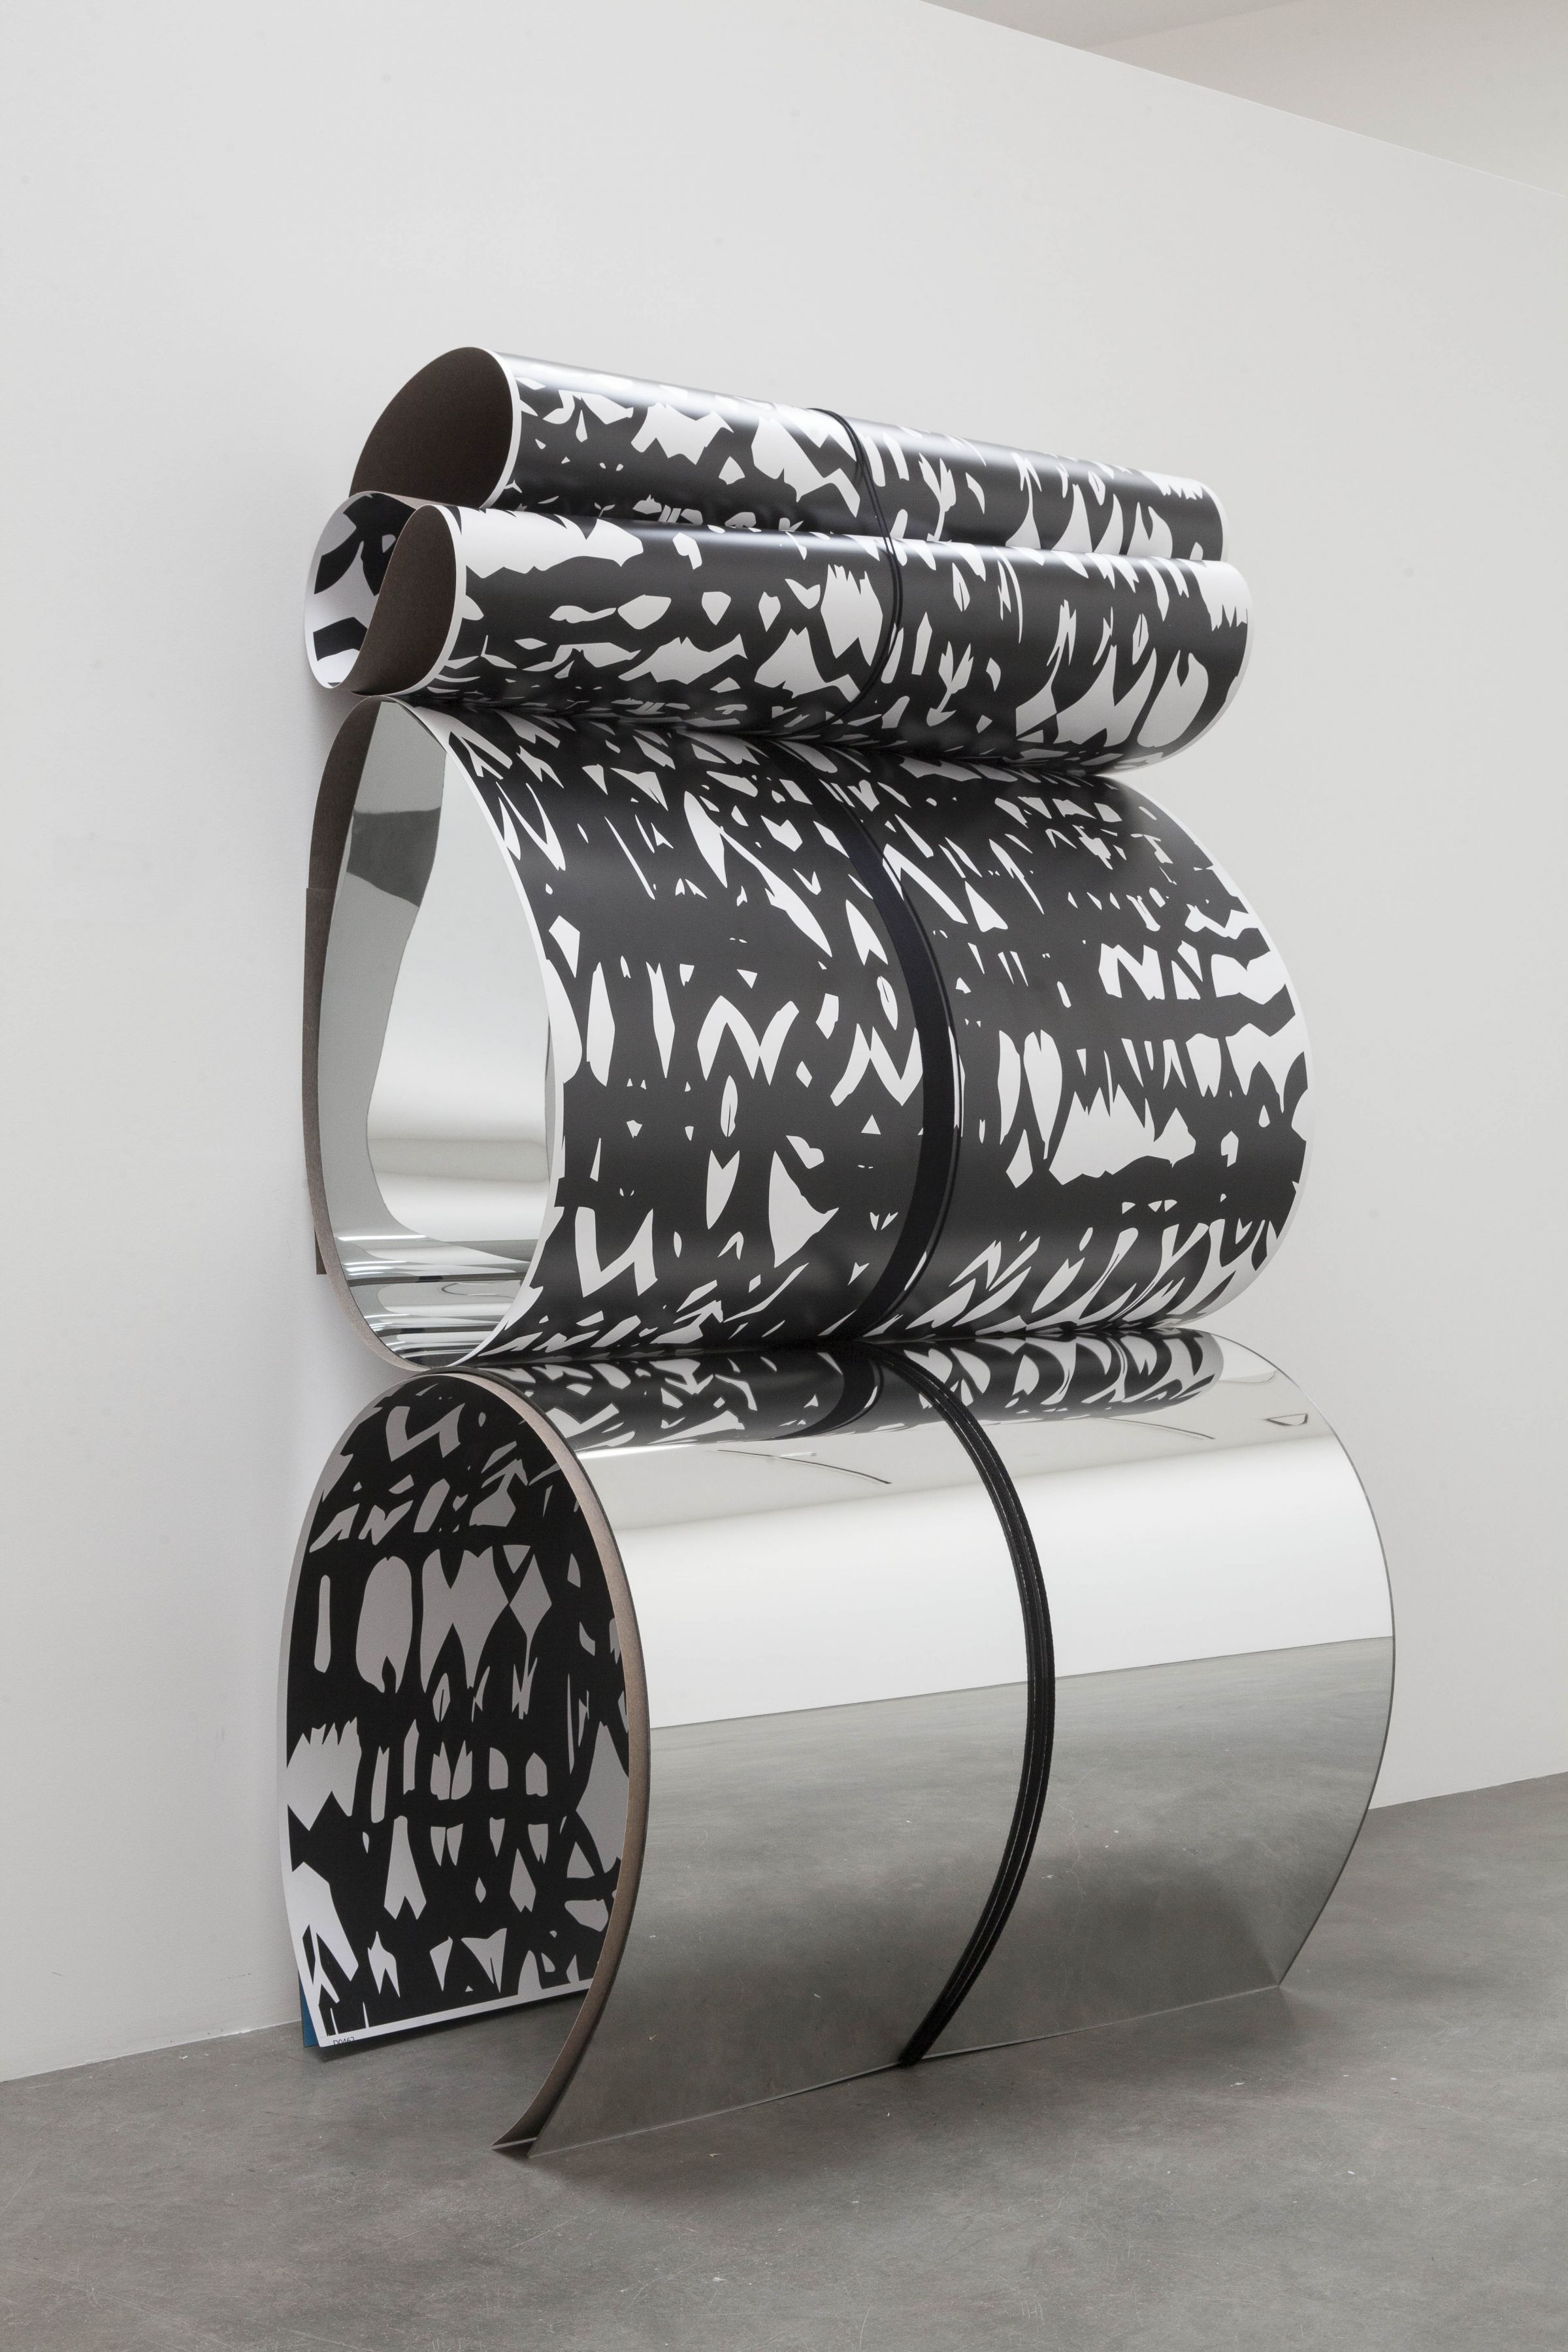 a sculpture by Julia Dault in a Chelsea contemporary art gallery